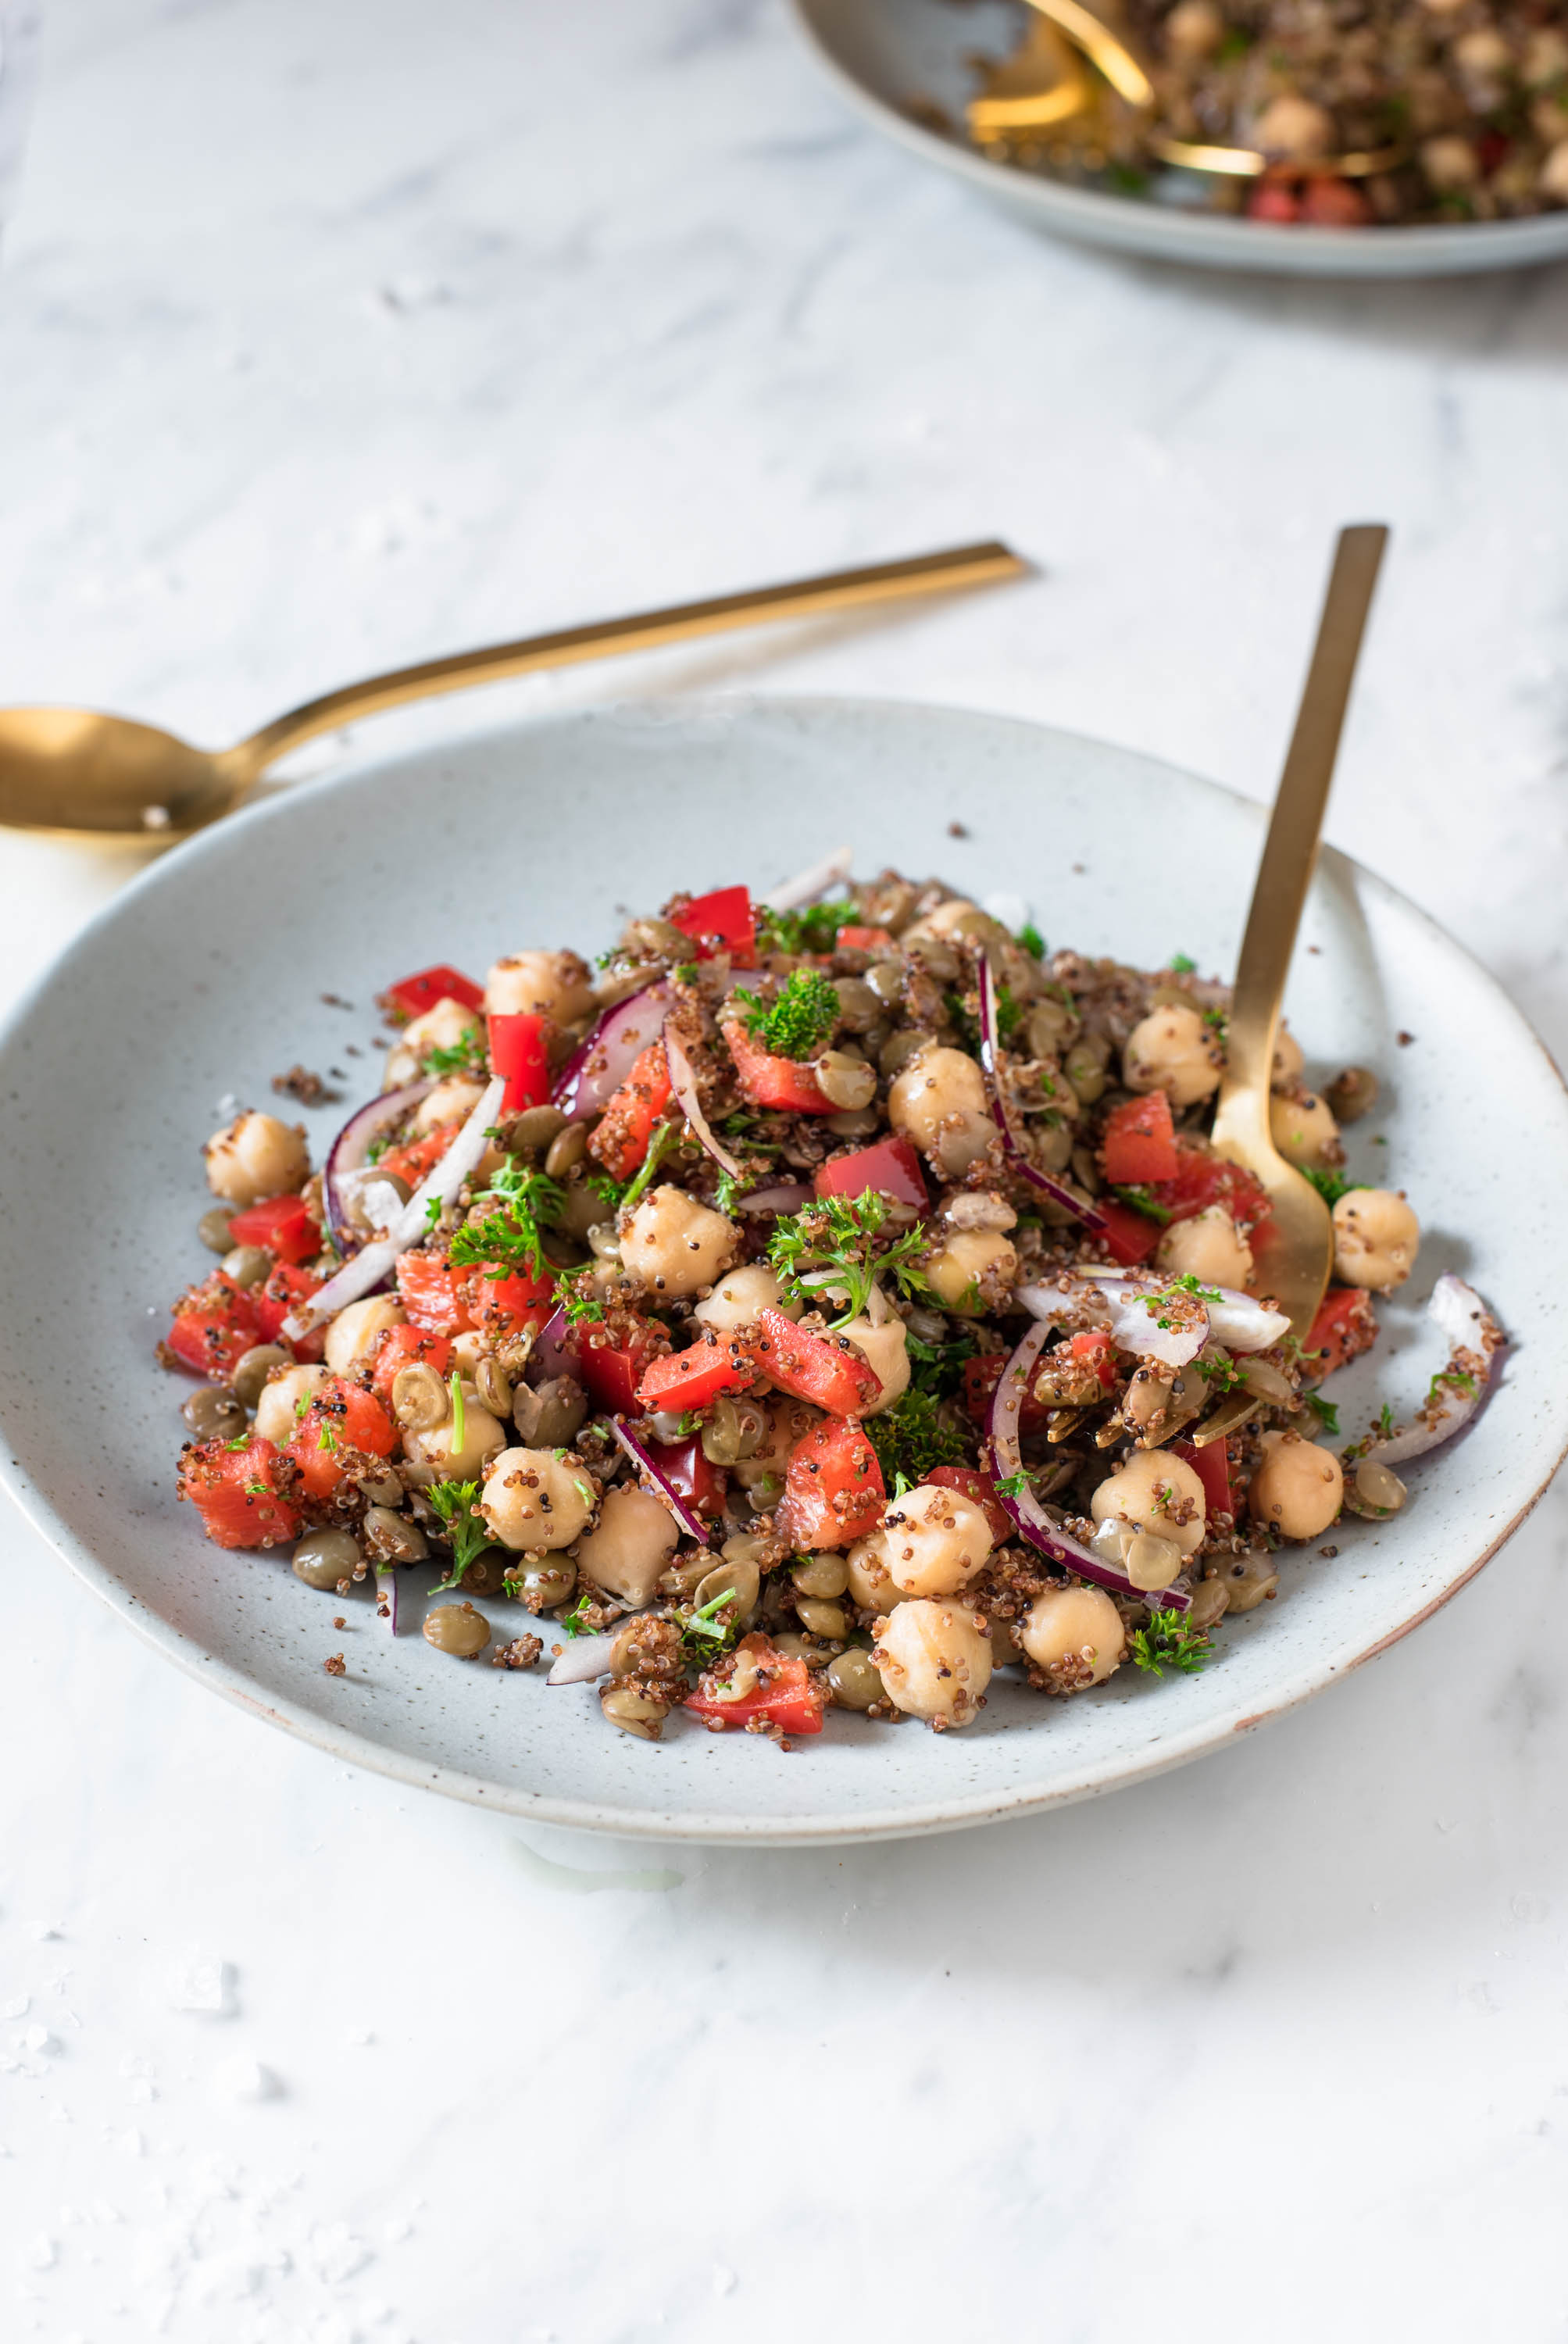 45 degree angle of a colorful, super healthy and quick 5-minute lentil chickpea salad